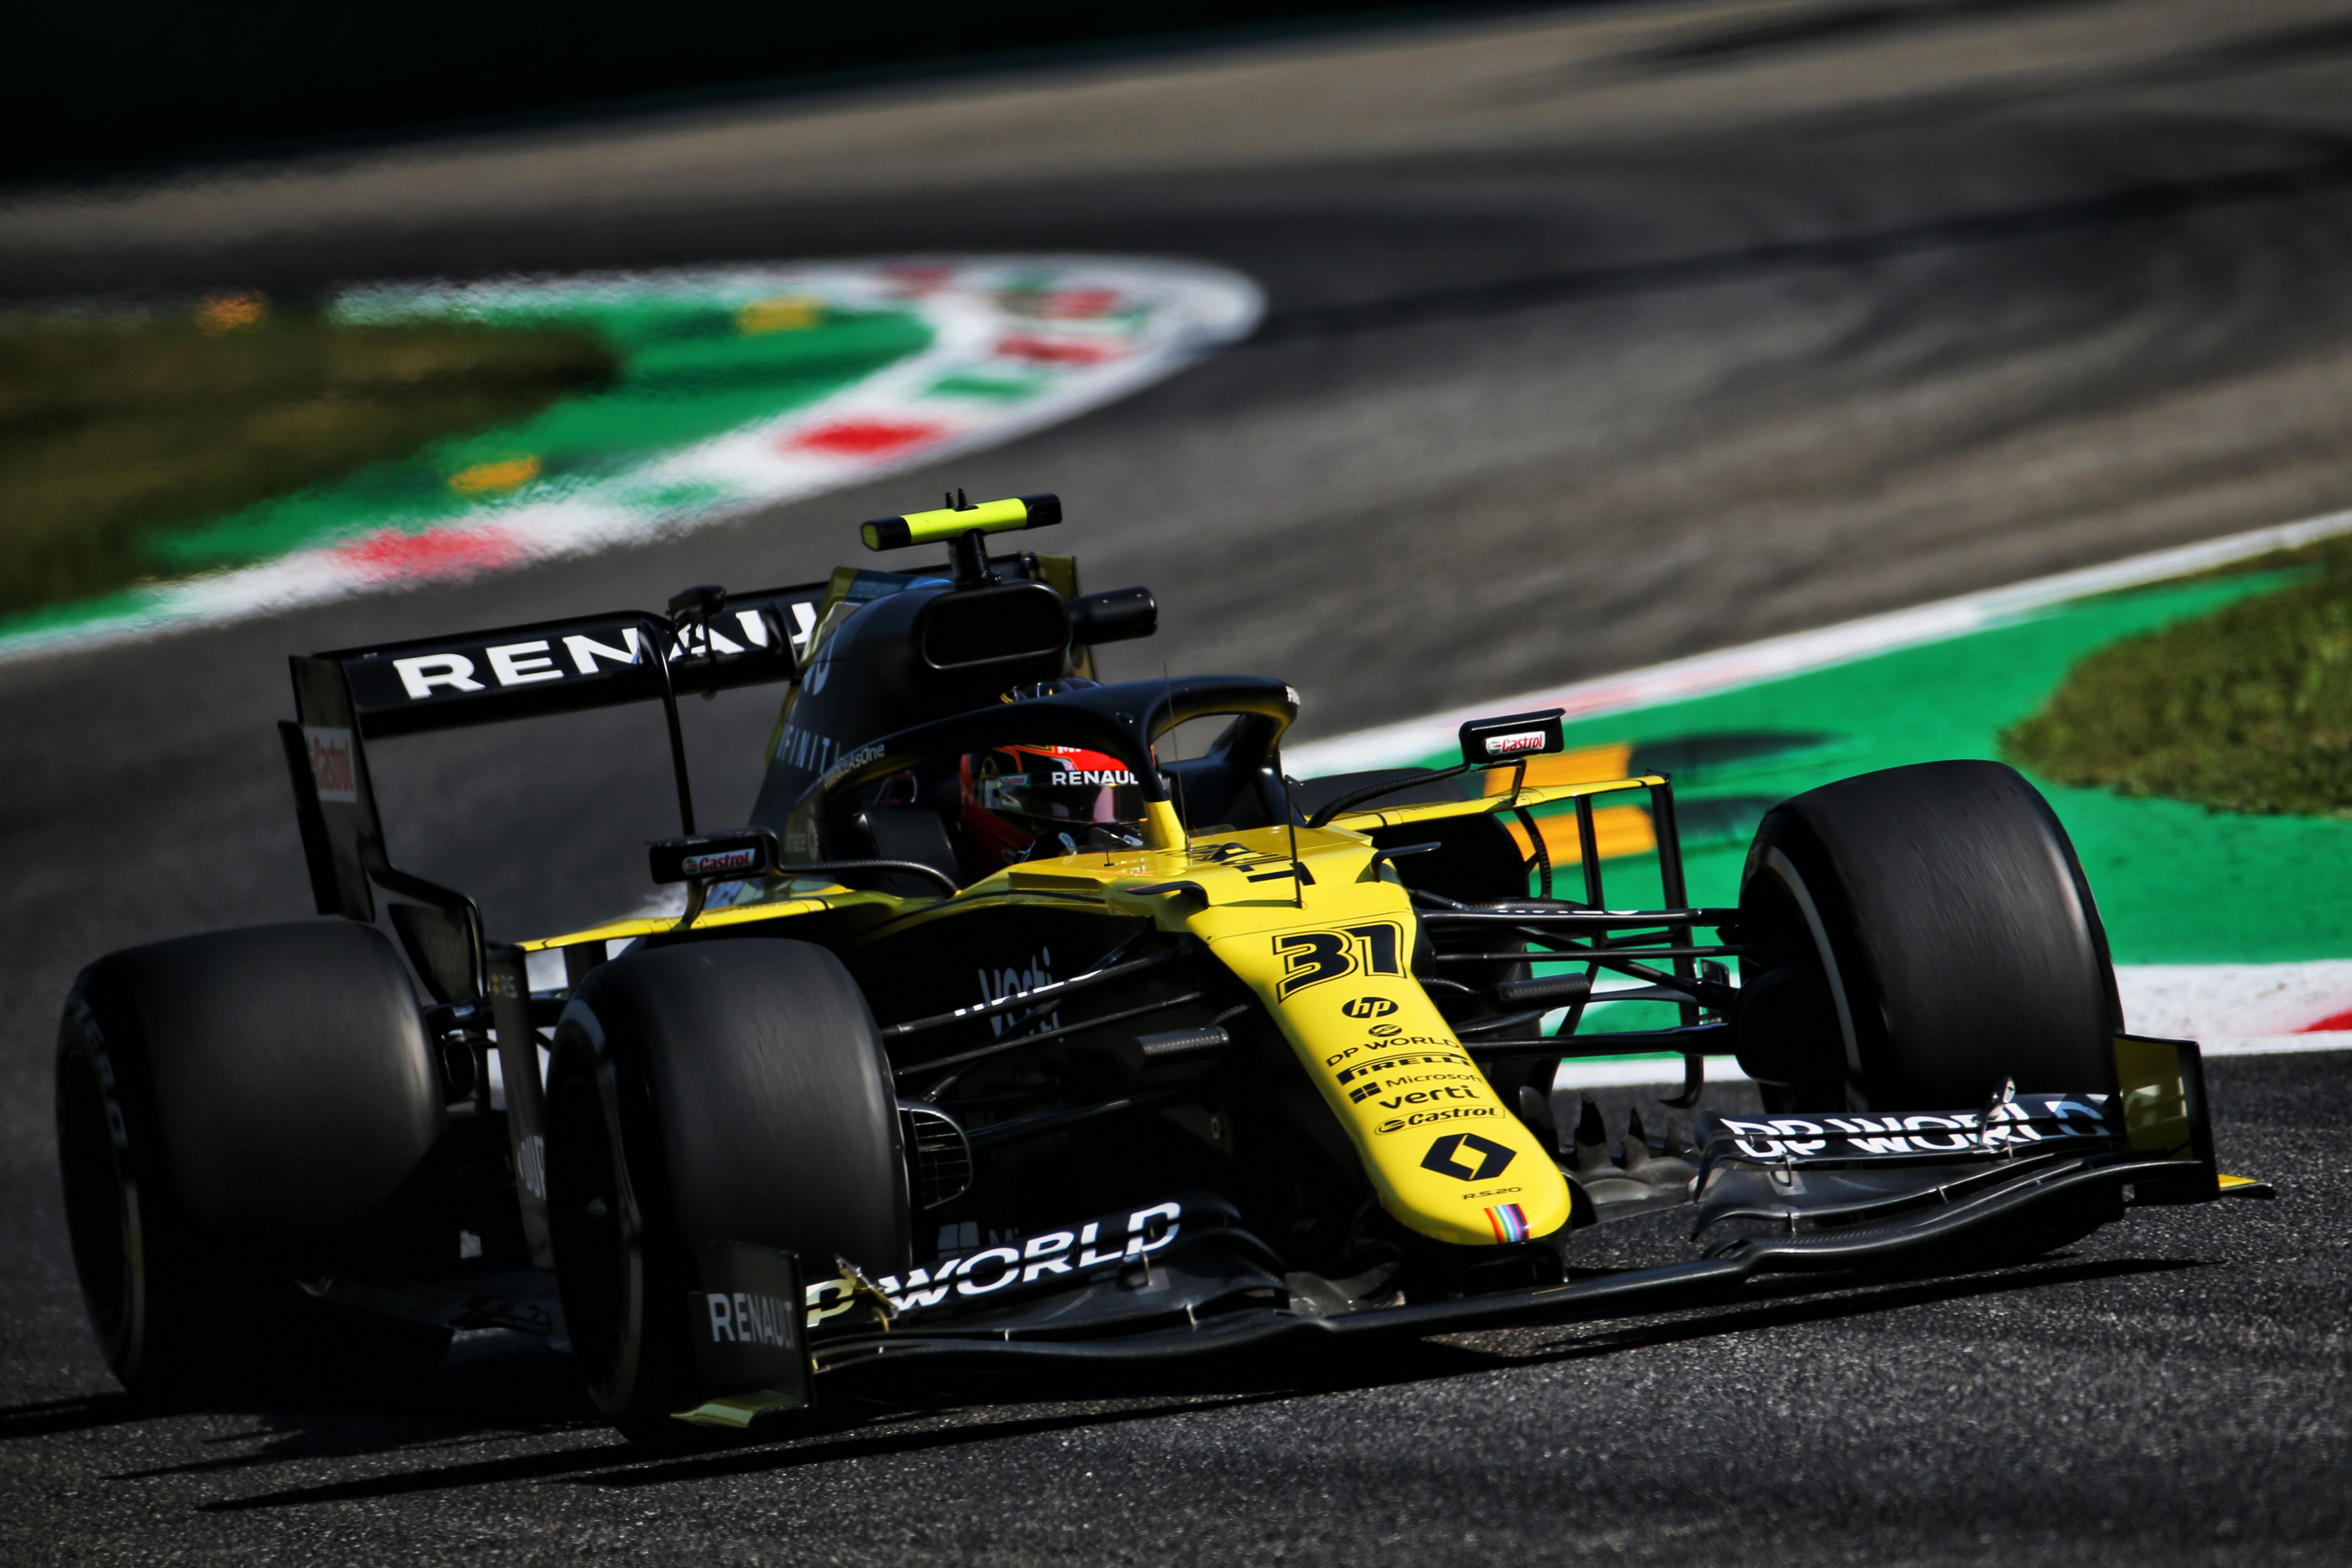 New Renault Ceo Will Decide If F1 Team Gets Alpine Rebrand The Race